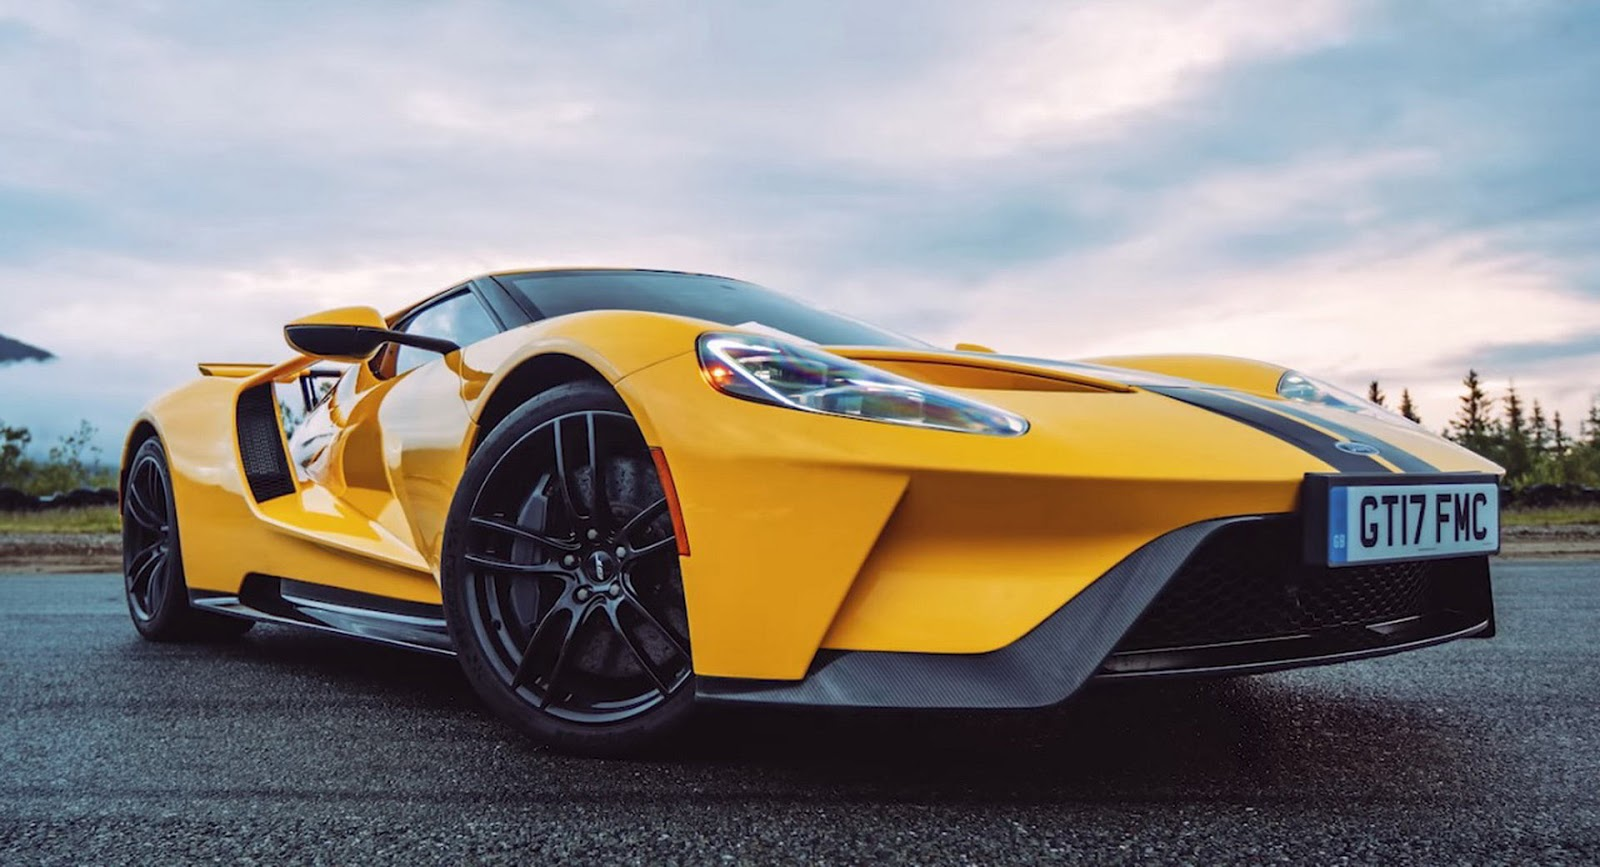 This Amazing Video Affords Us The Opportunity To Join Steve Sutcliffe Once Again As He Hits The Beautiful Roads Of Norway In The Fabulous New Ford Gt